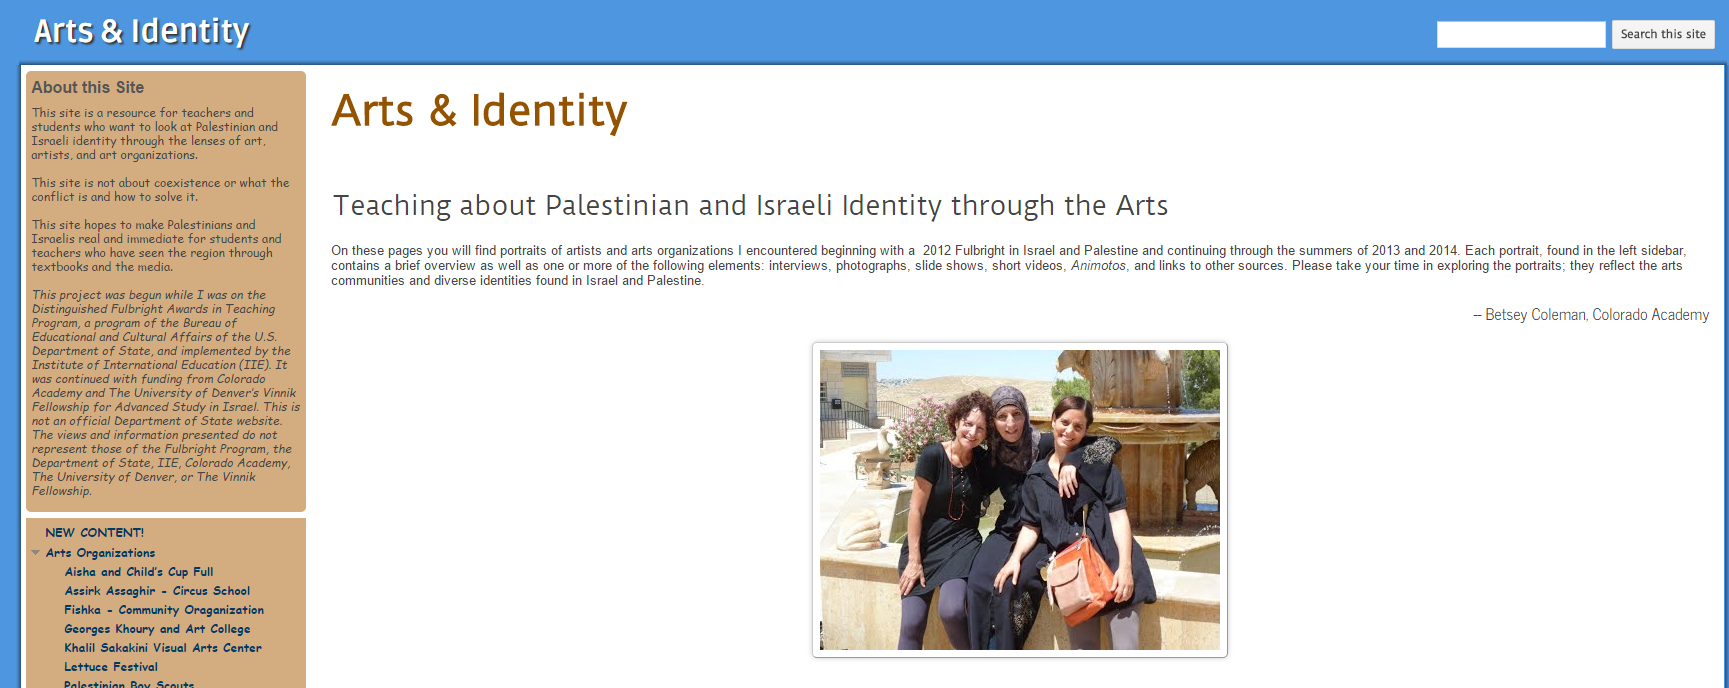 Arts & Identity: Teaching About Palestinian and Israeli Identity Through the Arts